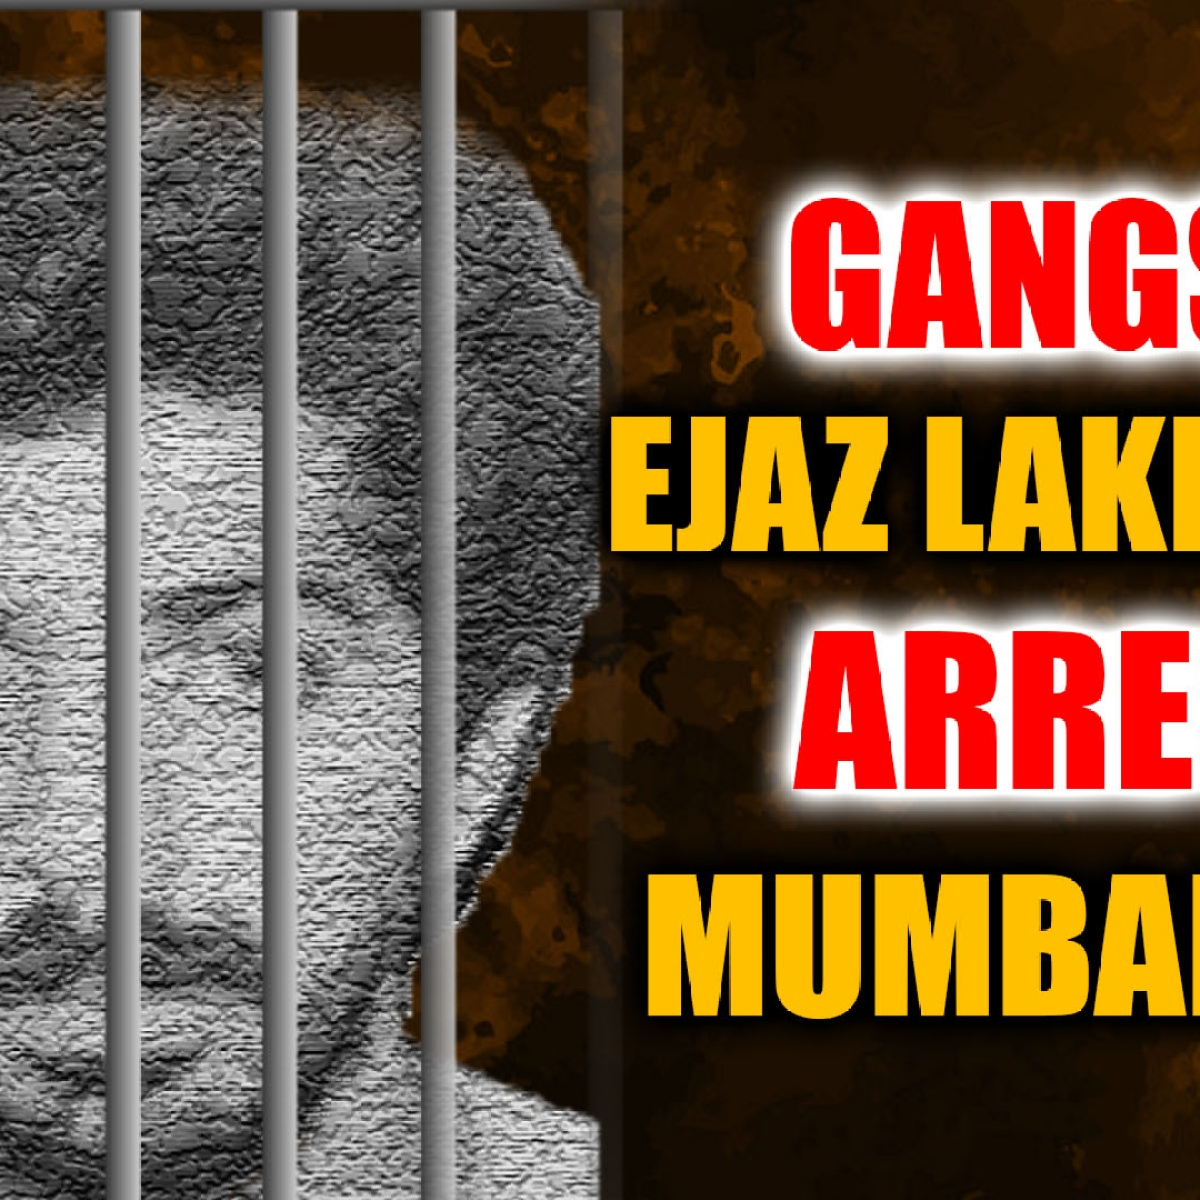 Fugitive gangster Ejaz Lakdawala, wanted in extortion and attempt to kill, arrested by Mumbai Police